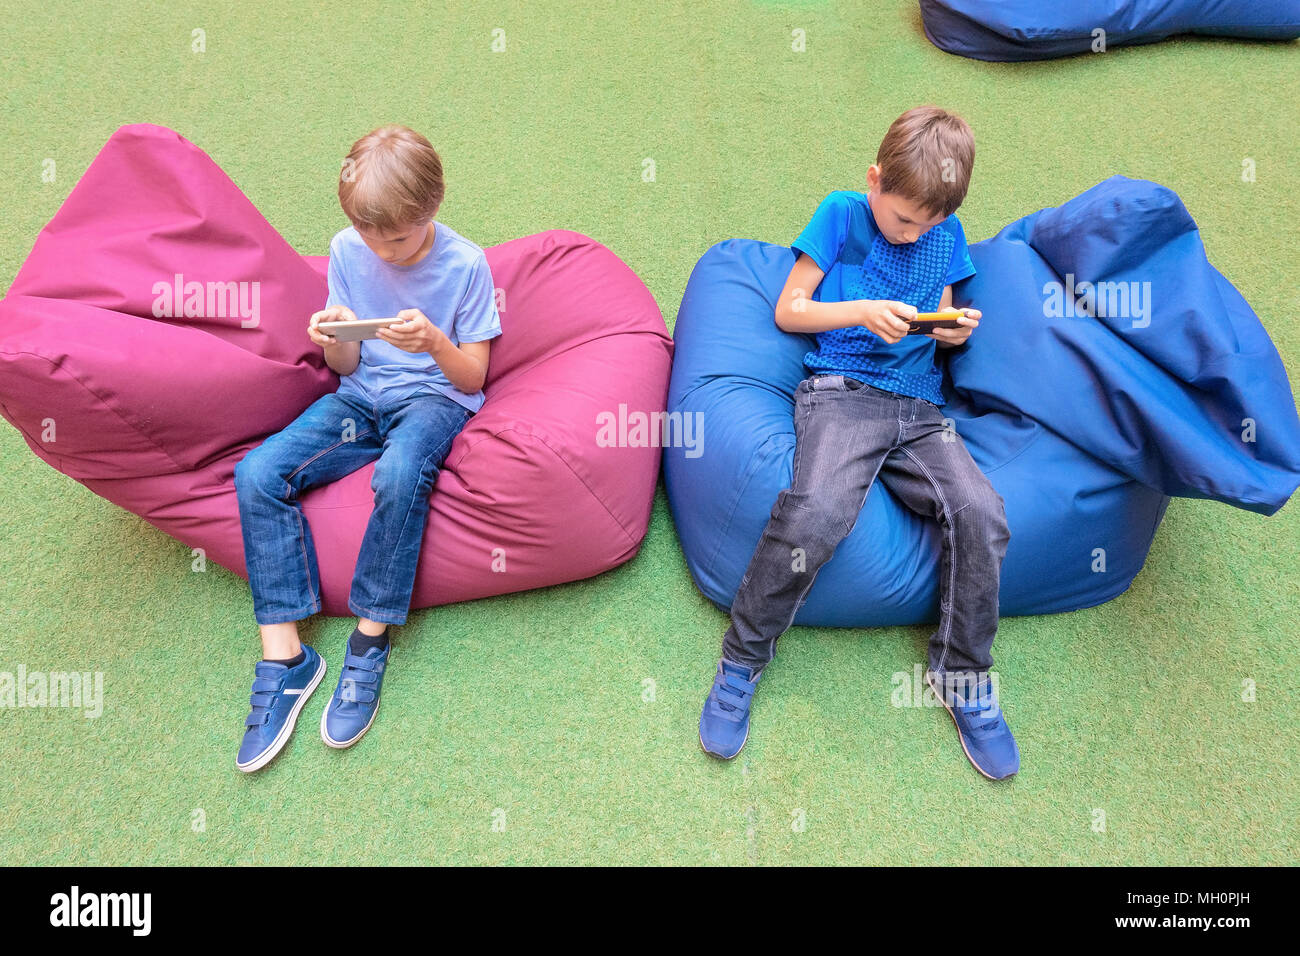 Children using mobile phone sitting on bag chairs - Stock Image